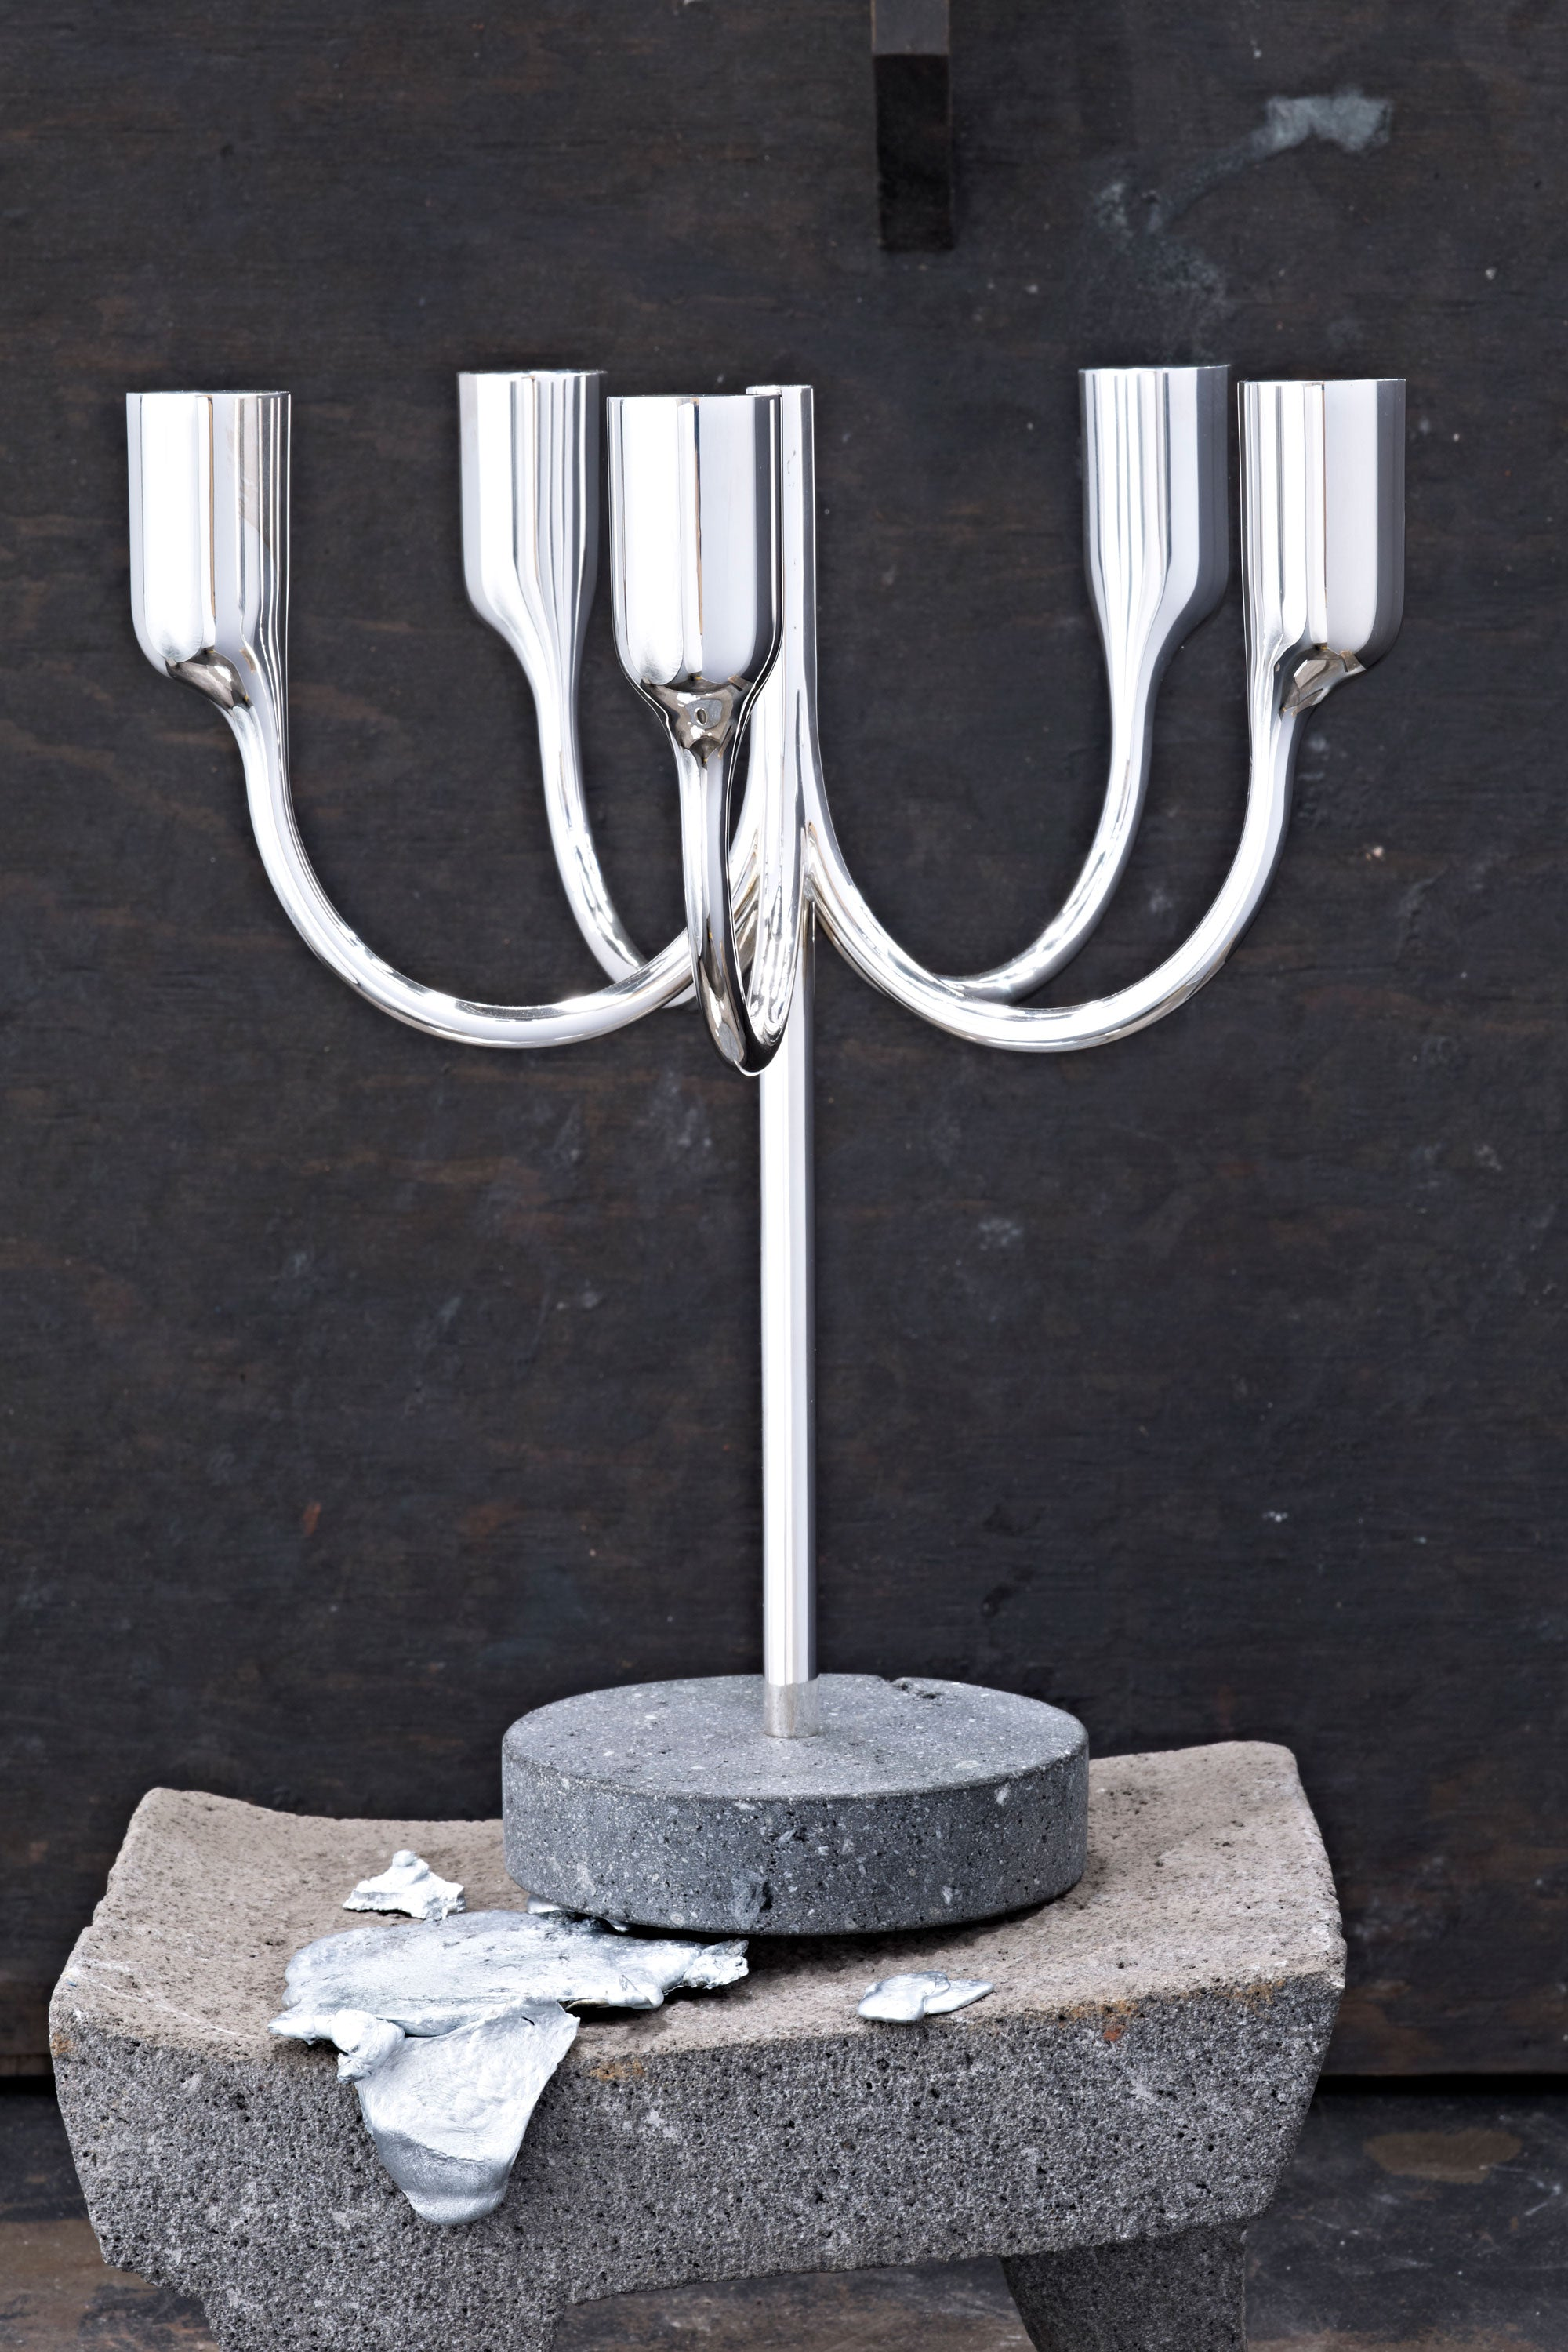 Tane Silver Lighting Collection designed by Bodo Sperlein